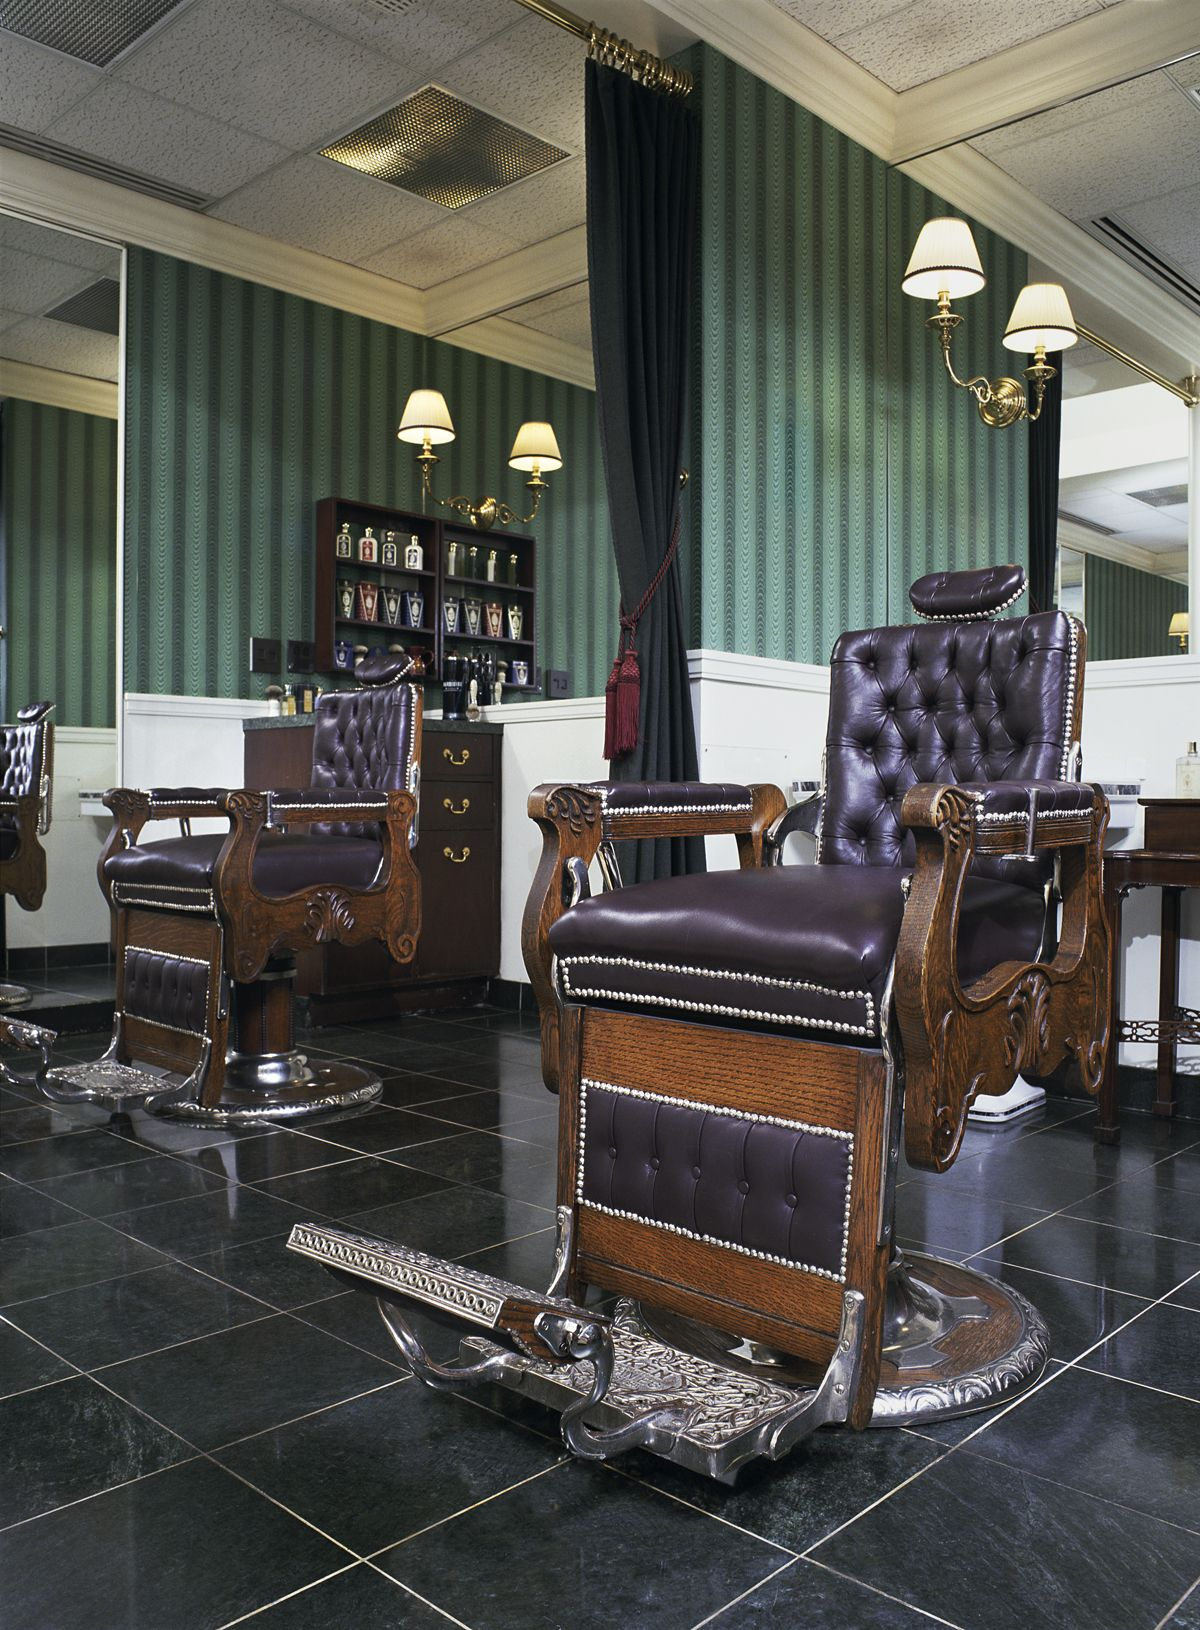 mobile barber chair chairs that pull out into beds 1905 koken design details of the